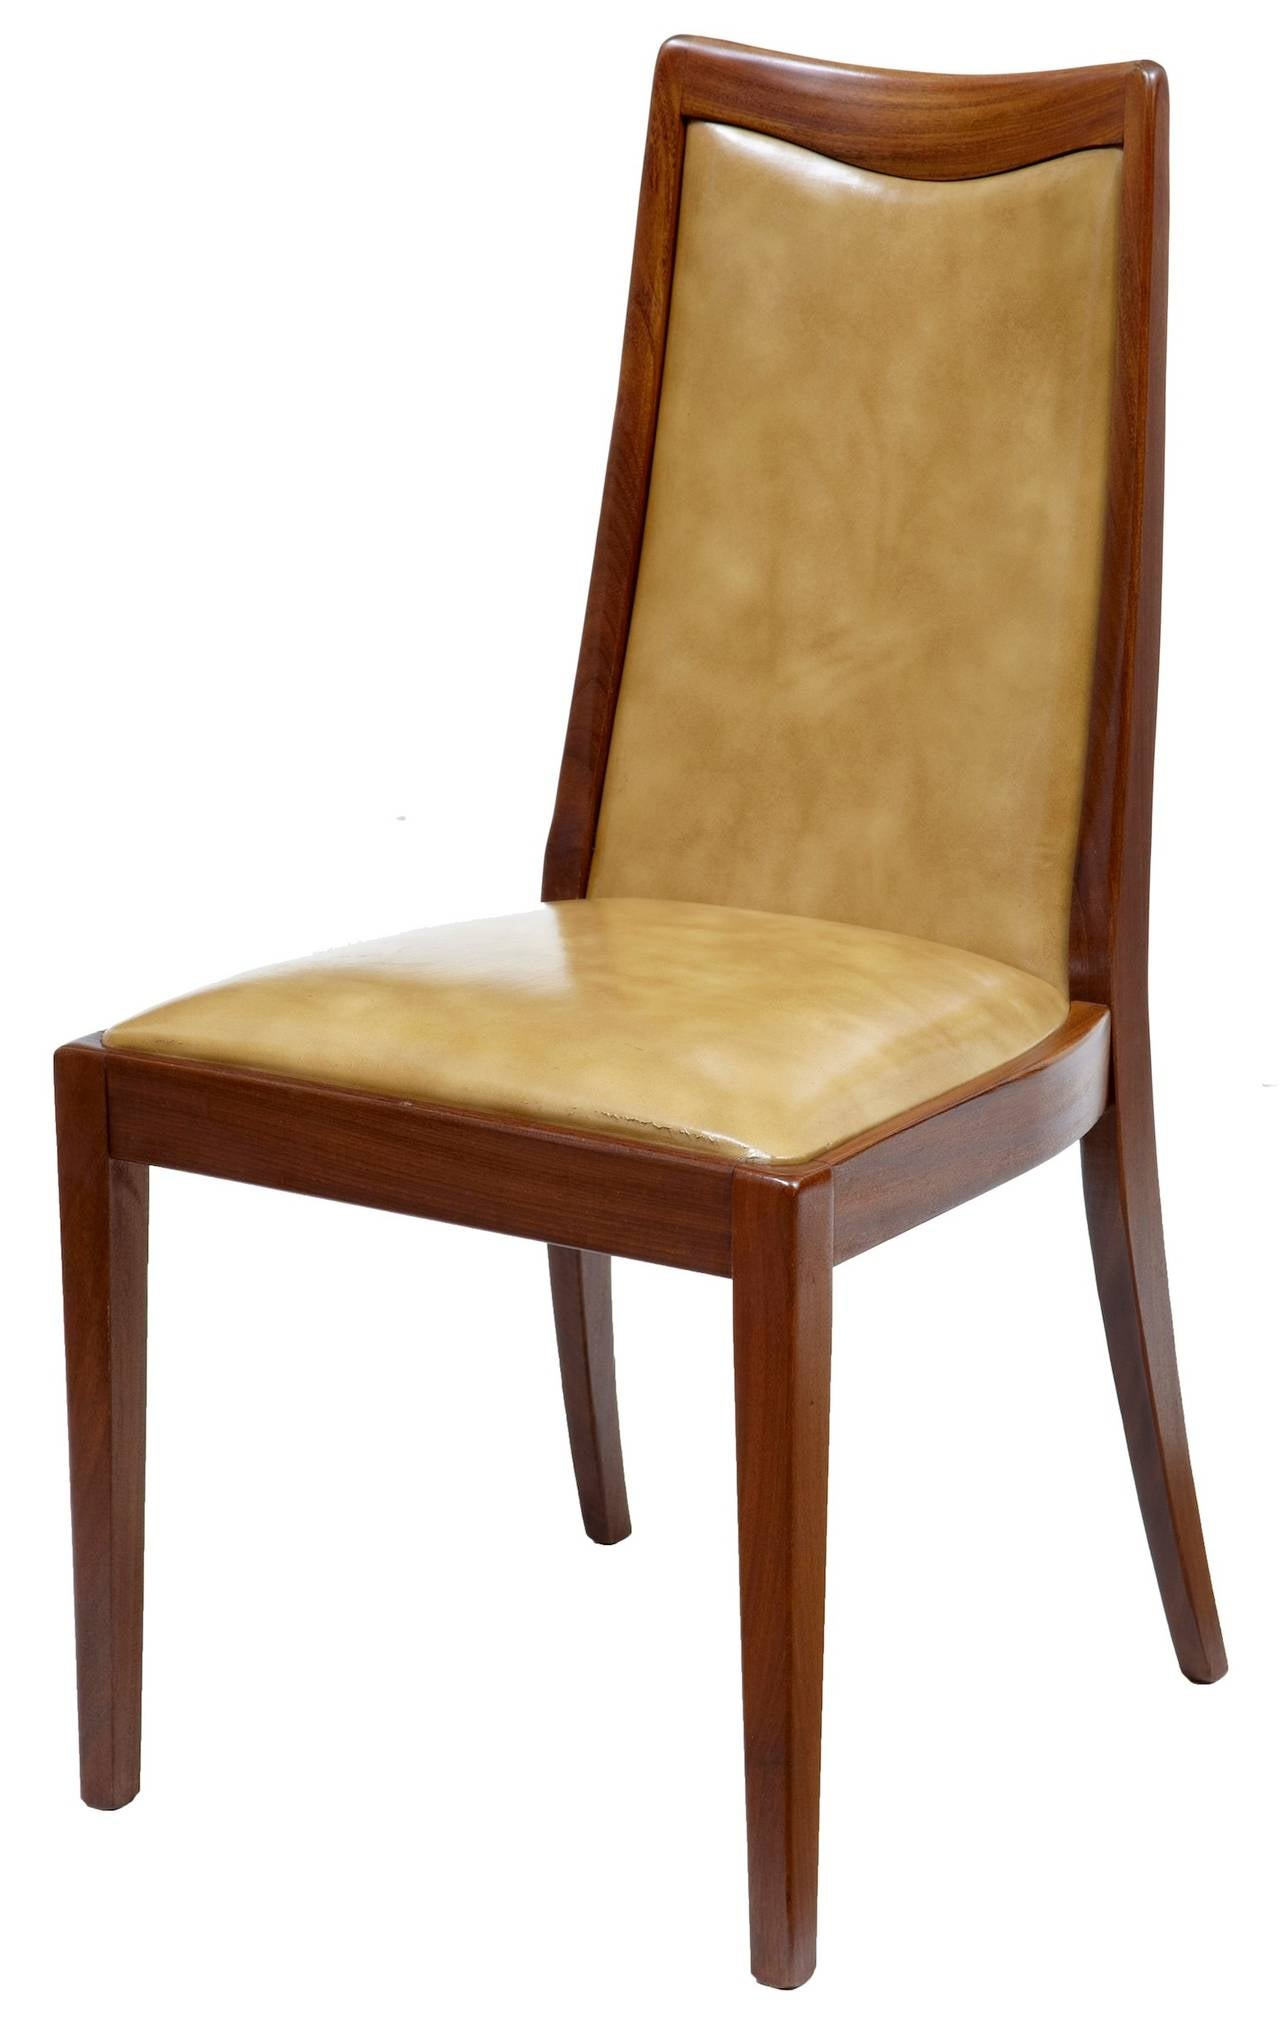 Retro Dining Chair Set Of Eight 1960s Teak Retro G Plan Dining Chairs At 1stdibs